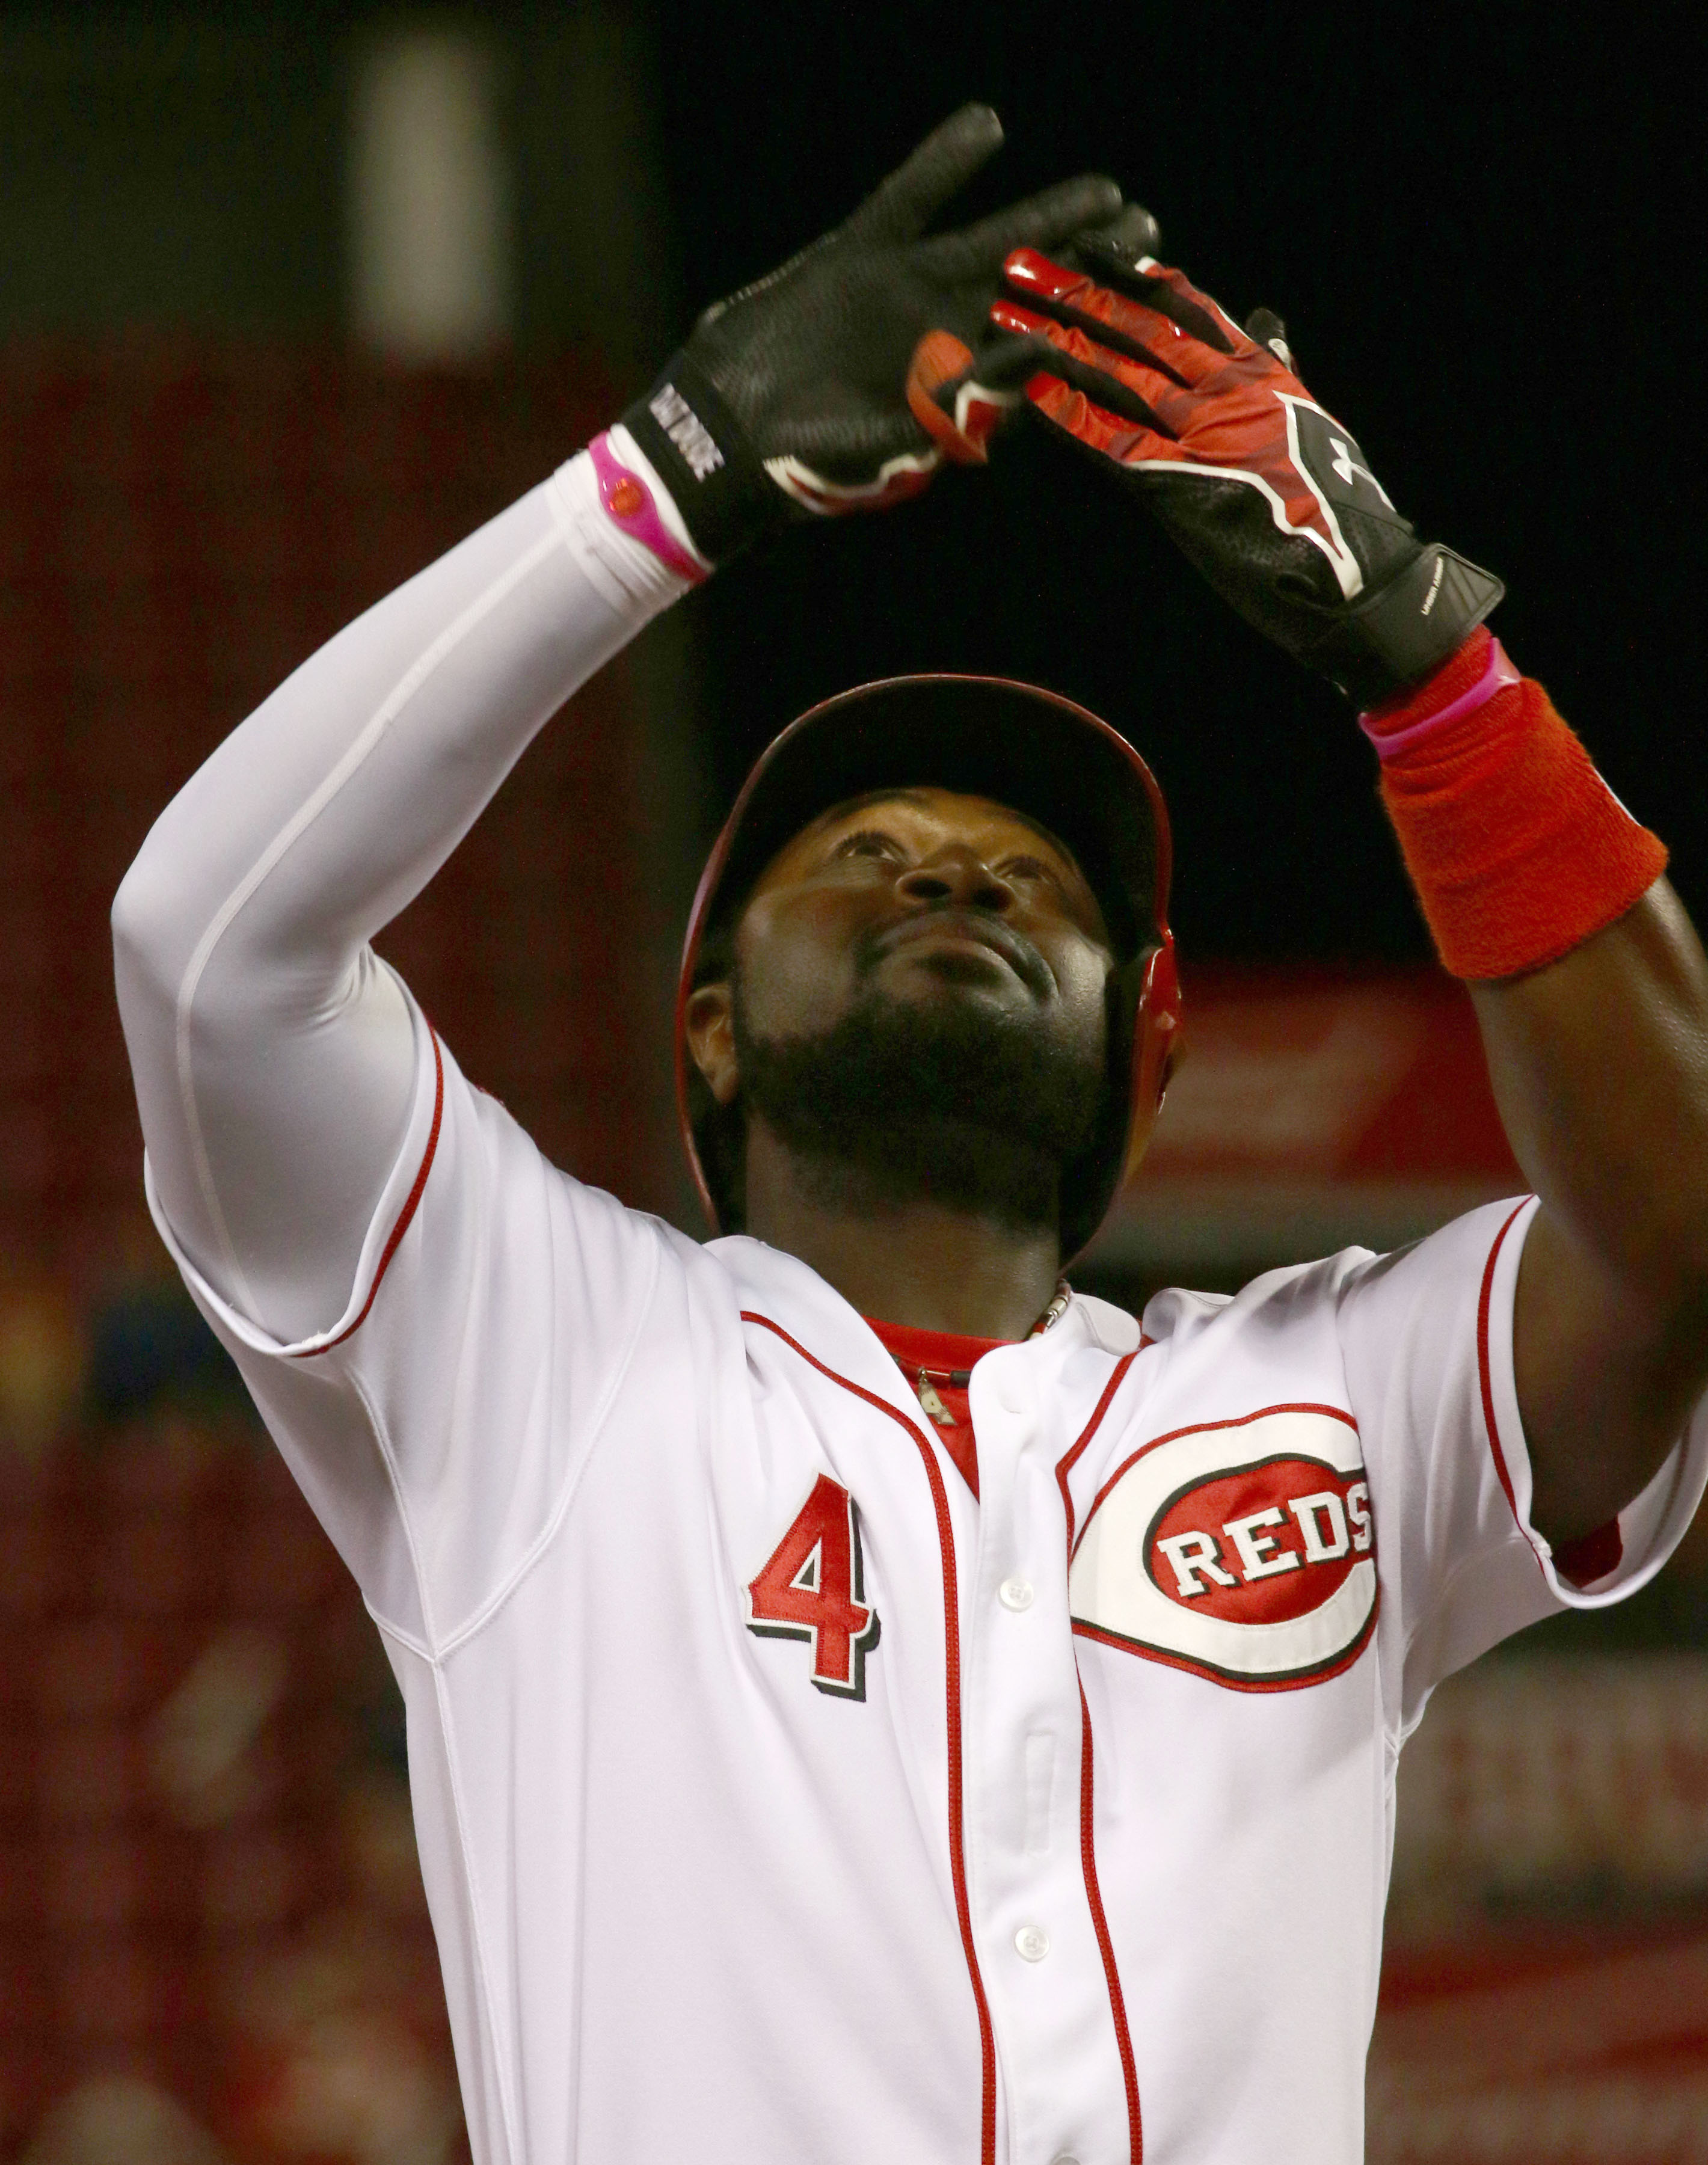 Cincinnati Reds Brandon Phillips reacts after hitting a two-run triple against the Detroit Tigers in the sixth inning of their baseball game in Cincinnati, Monday Aug. 24, 2015. (AP Photo/Tom Uhlman)